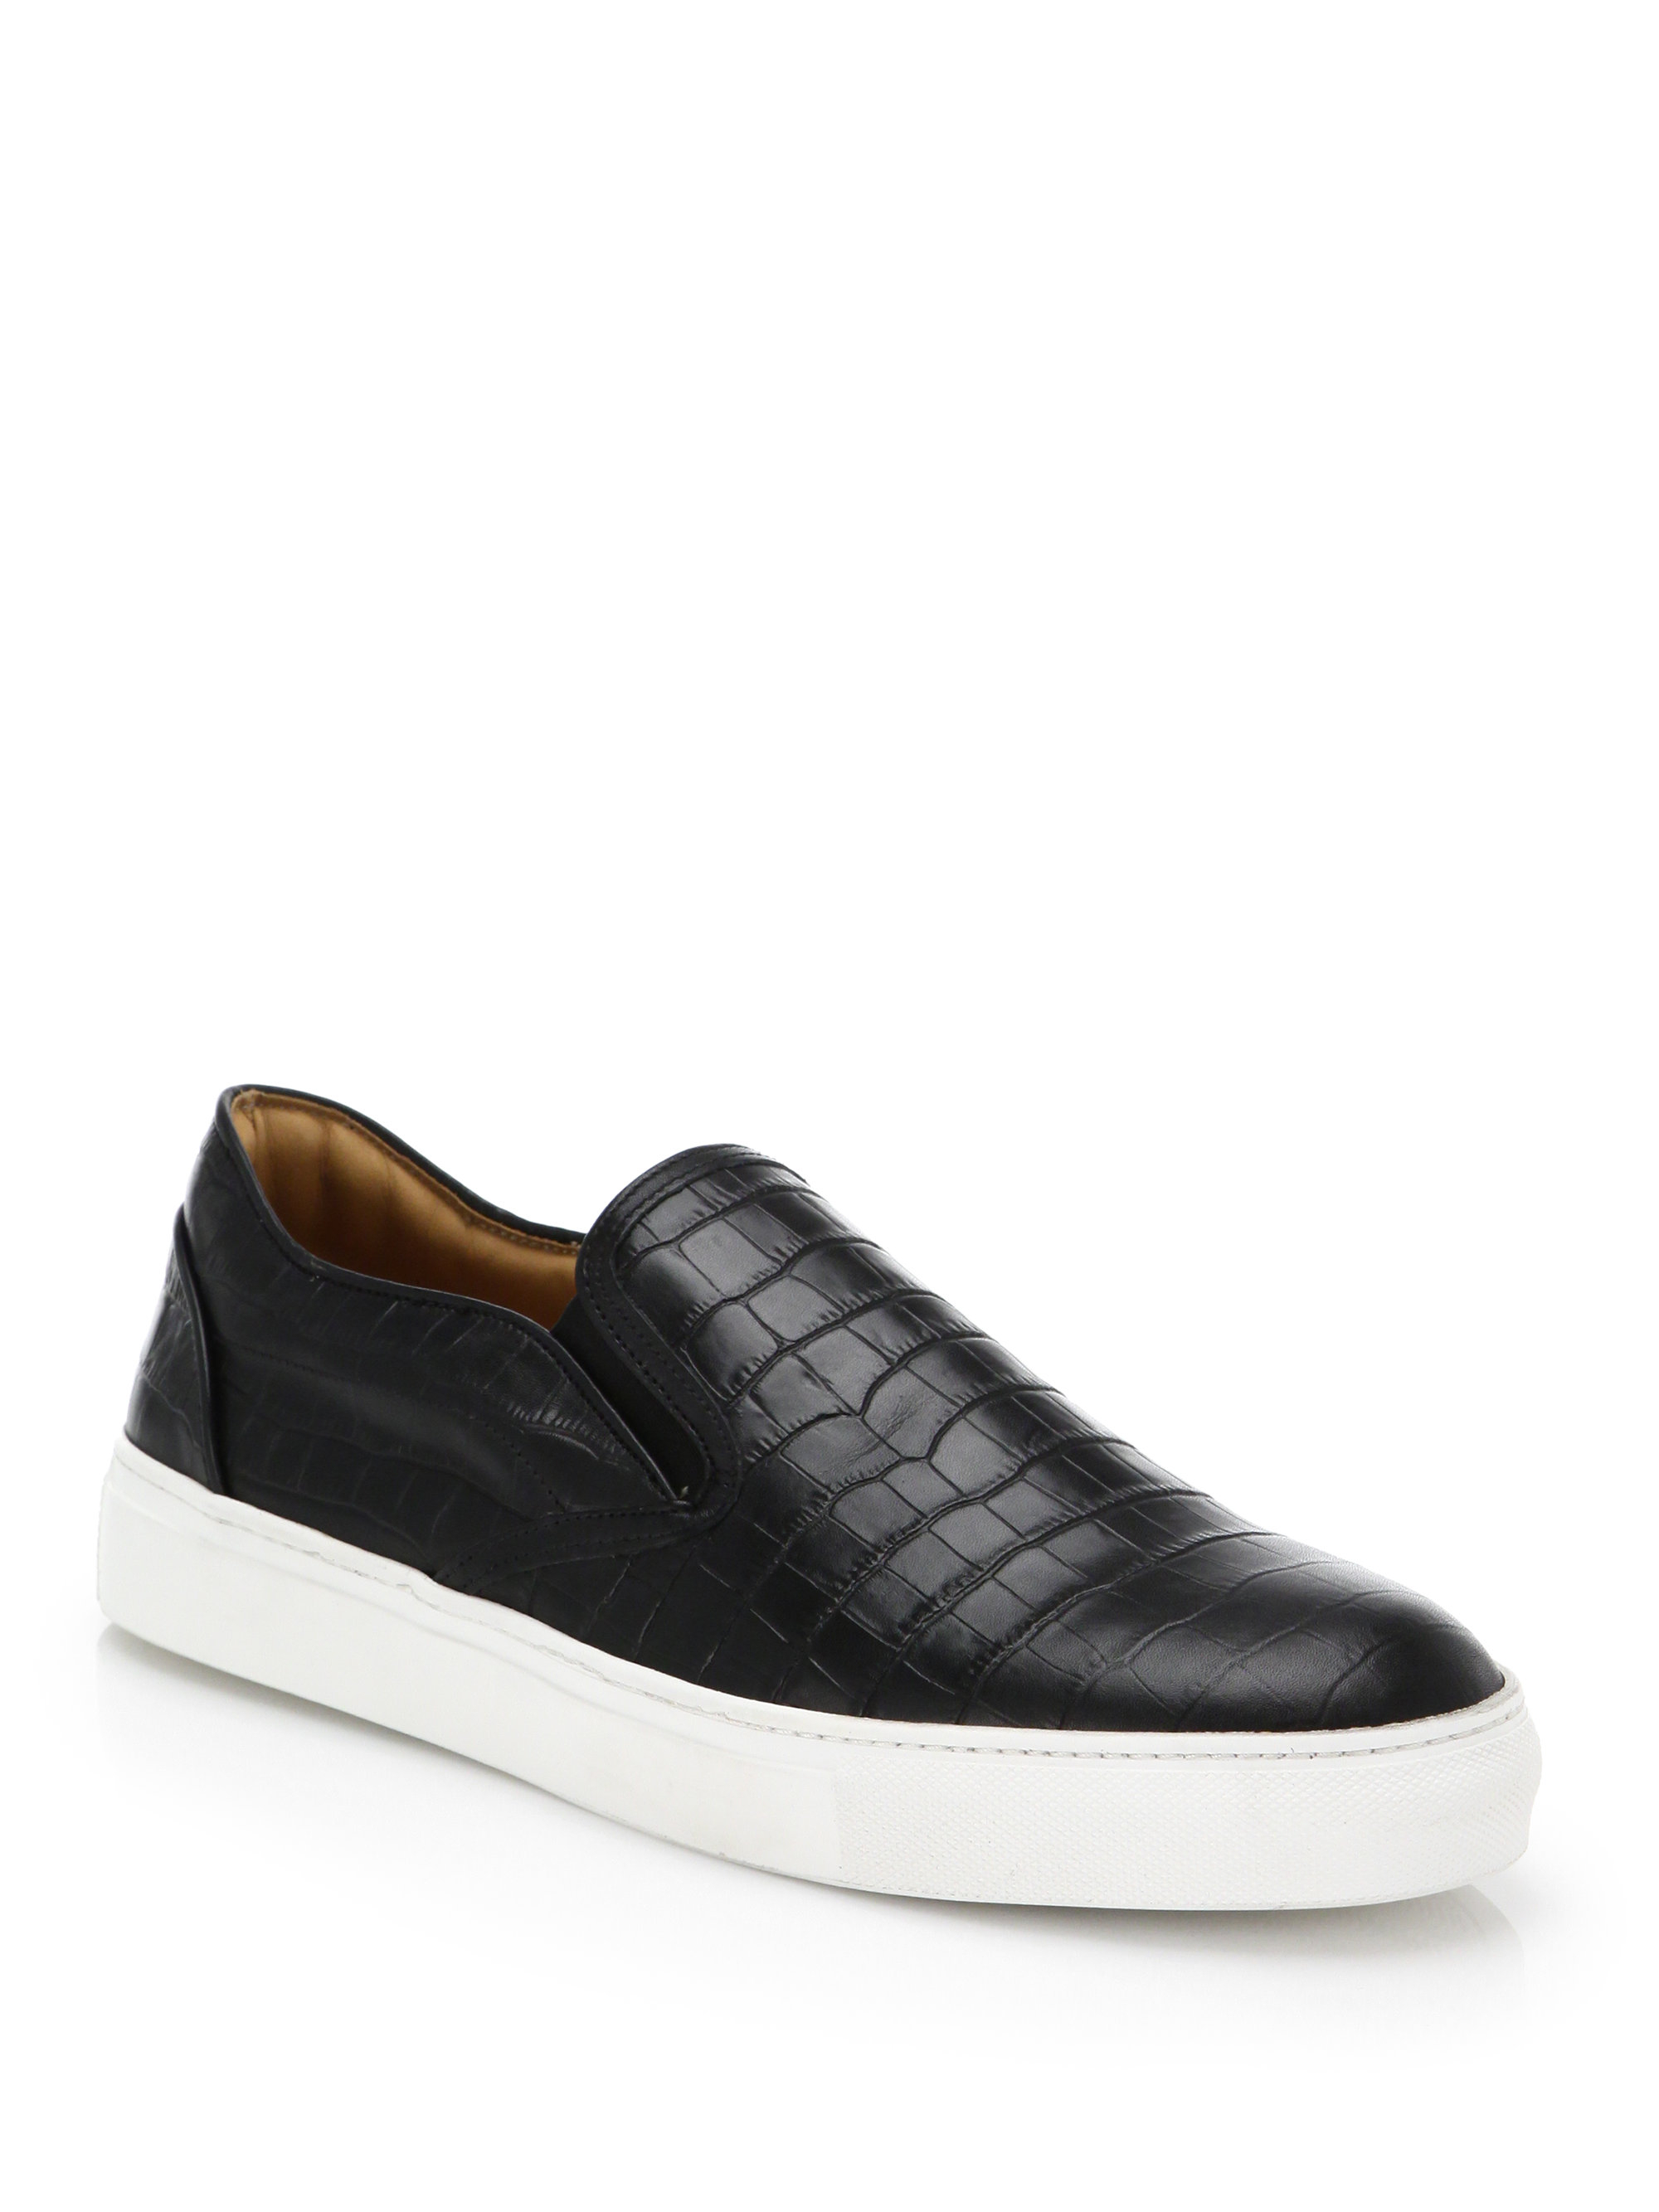 Black leather slip on sneakers - 12 results from brands Keds, products like Women's Keds Tiebreak Sneaker - Black (Leather) Slip-on Shoes, Women's Keds Prestige Sneaker - Black Leather Casual Shoes, Champion Originals - Black - Keds Sneakers, Shoes - By KEDS.